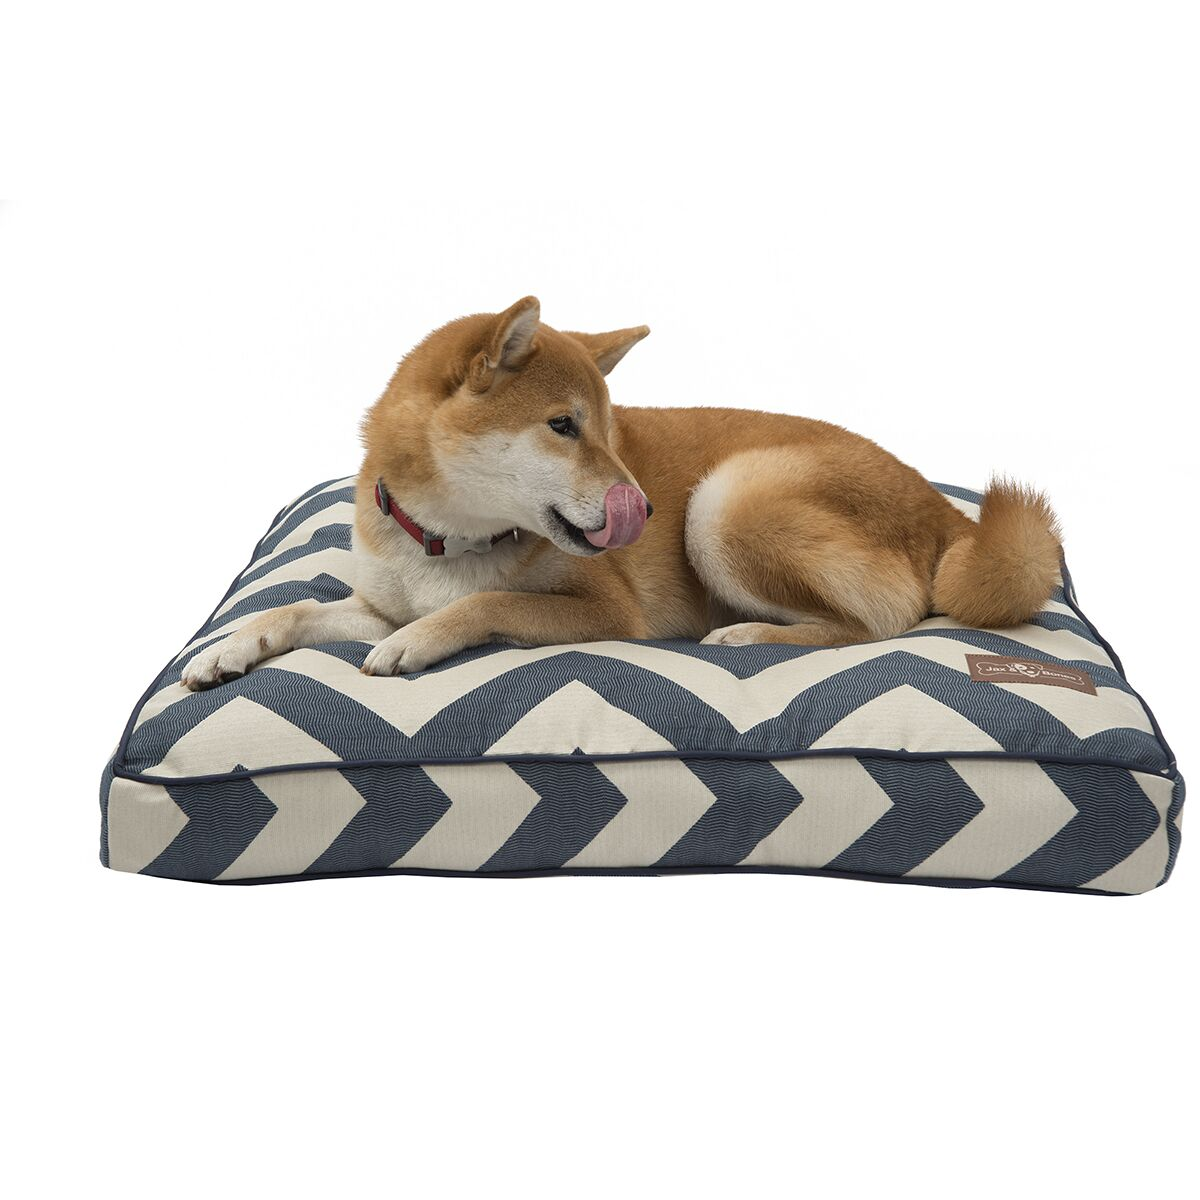 Spellbound Premium Cotton Square Pillow Dog Bed Color: Blue, Size: Small - 25